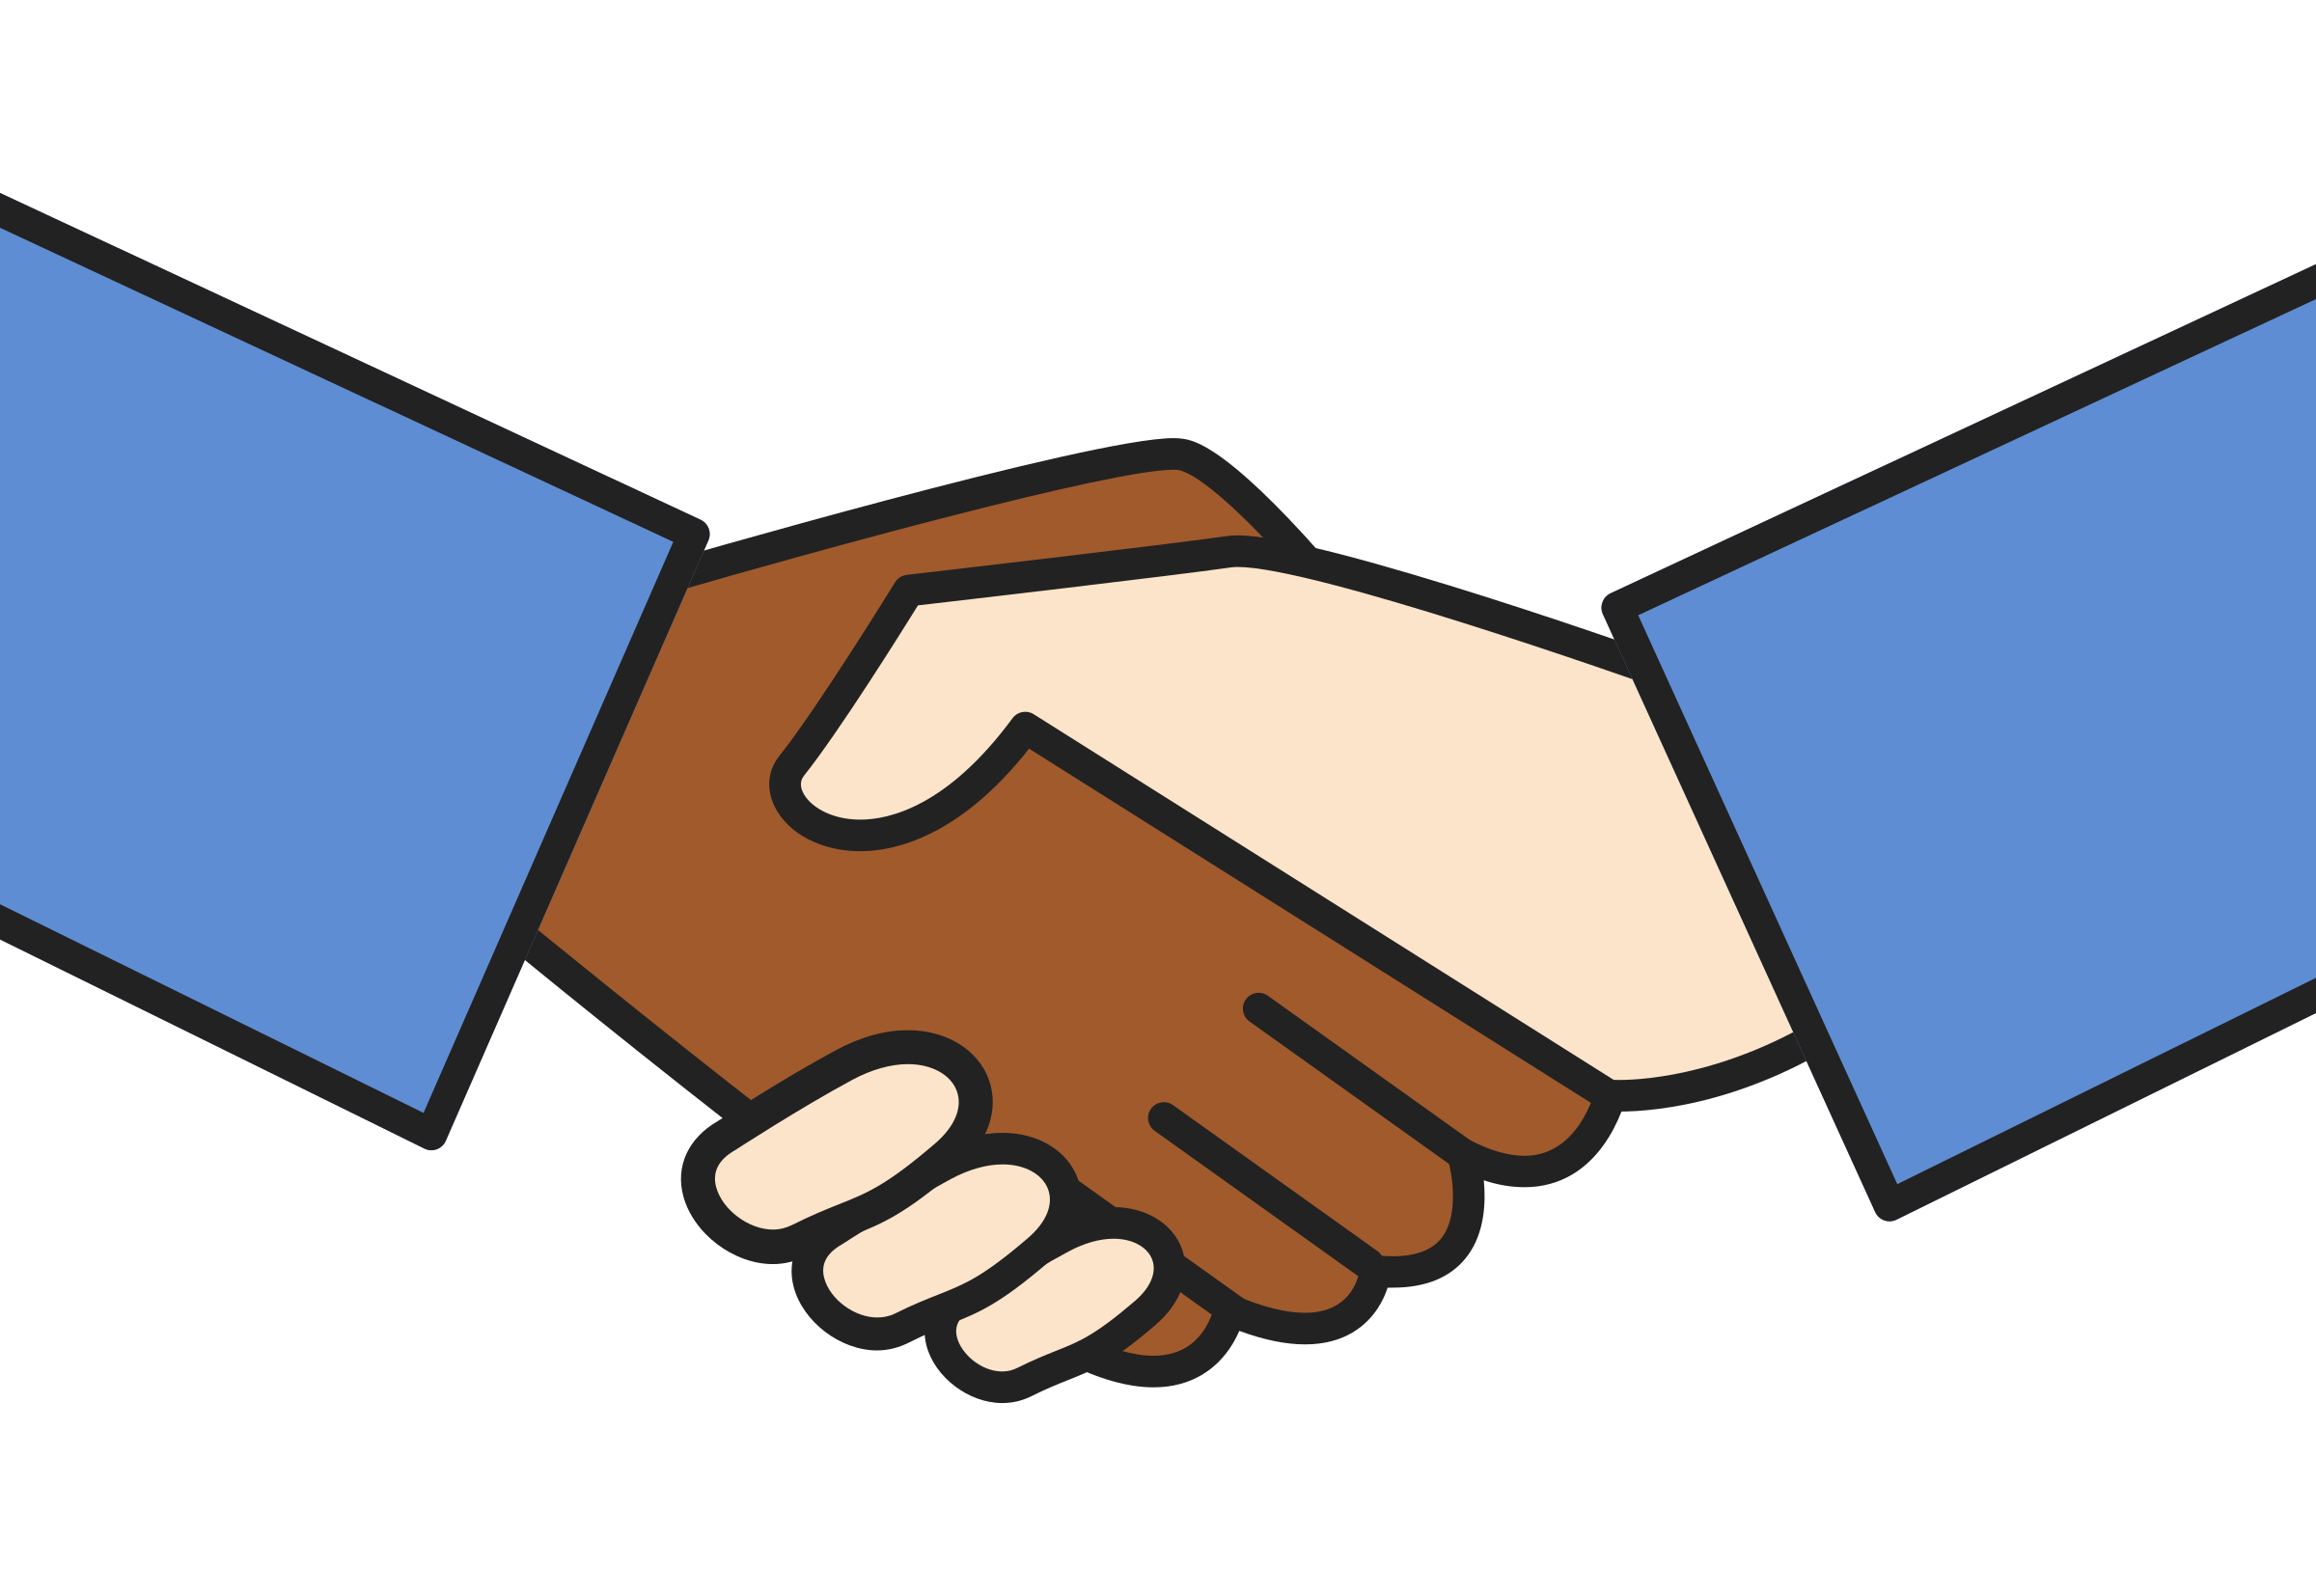 Handshake clipart great compromise. Cilpart wondrous ideas worker